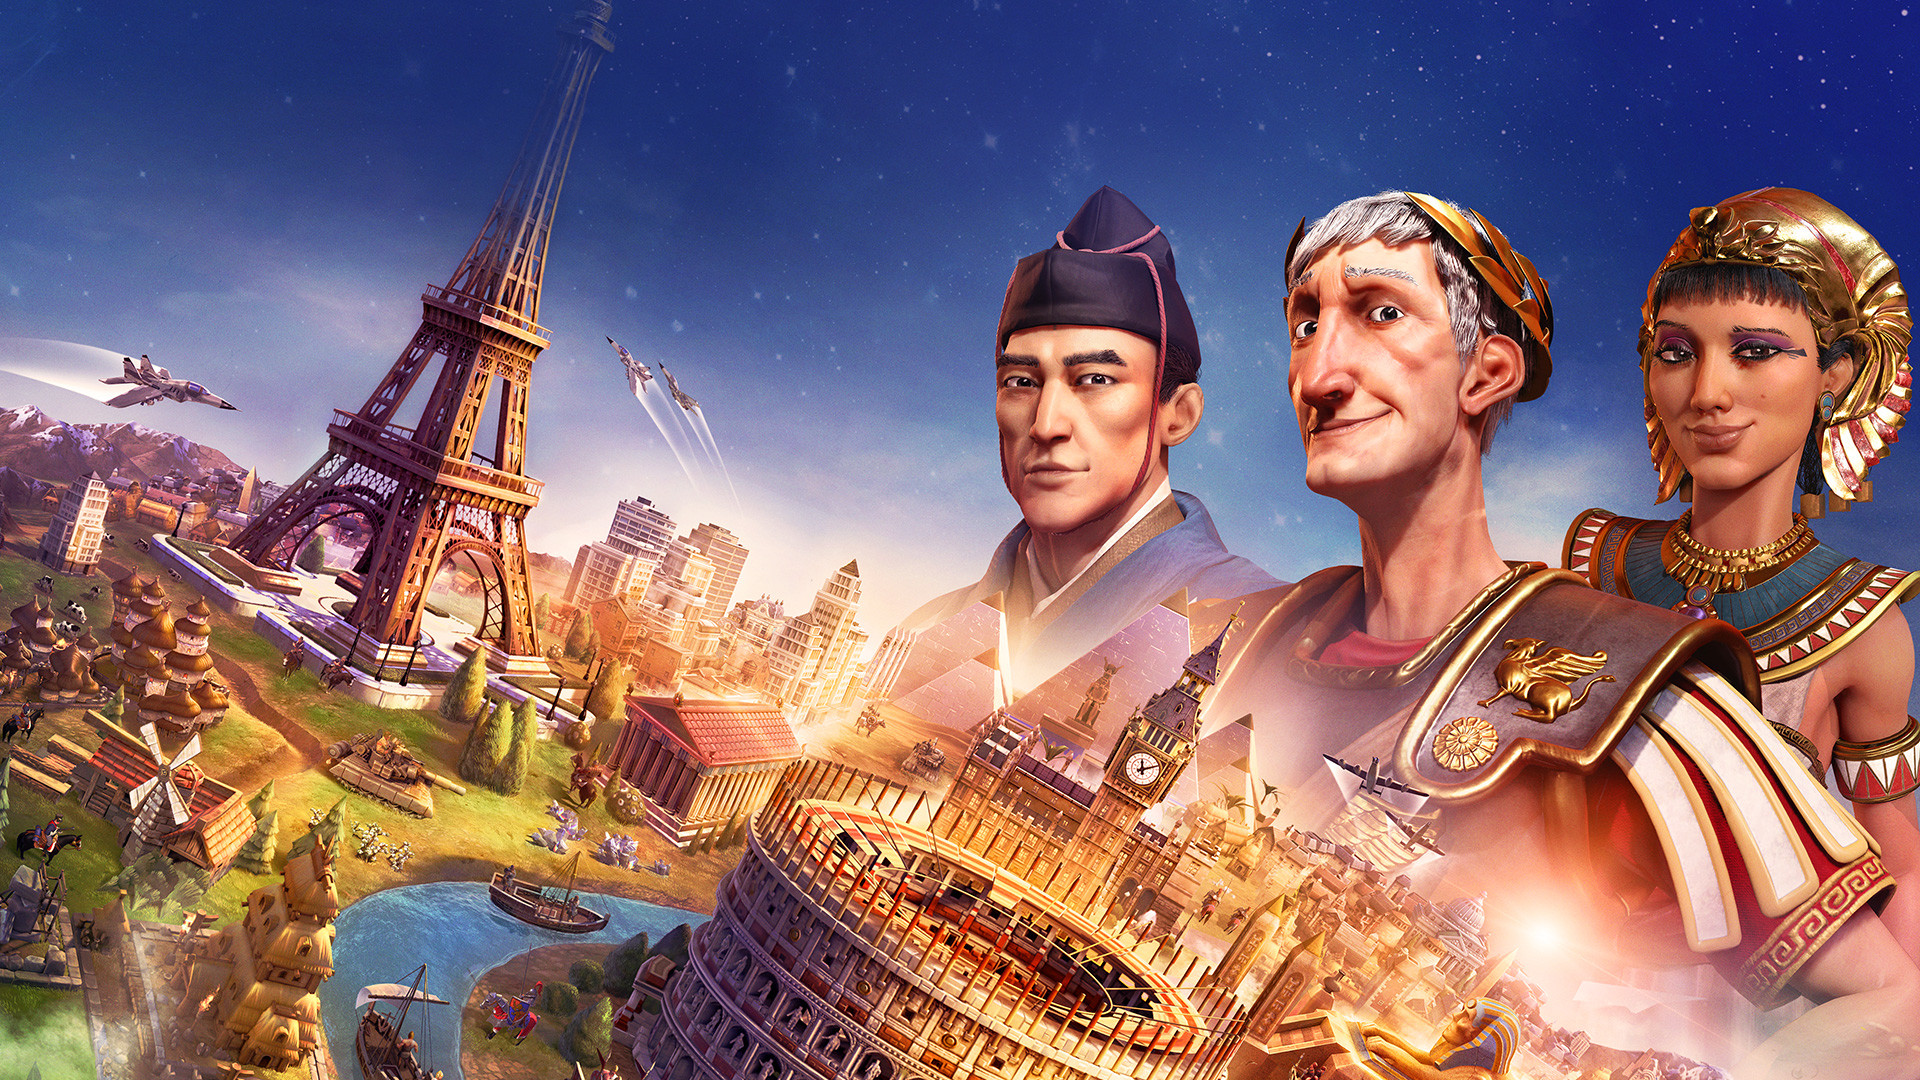 Turn-Based Strategy Game Civilization VI Is Headed To Switch This November